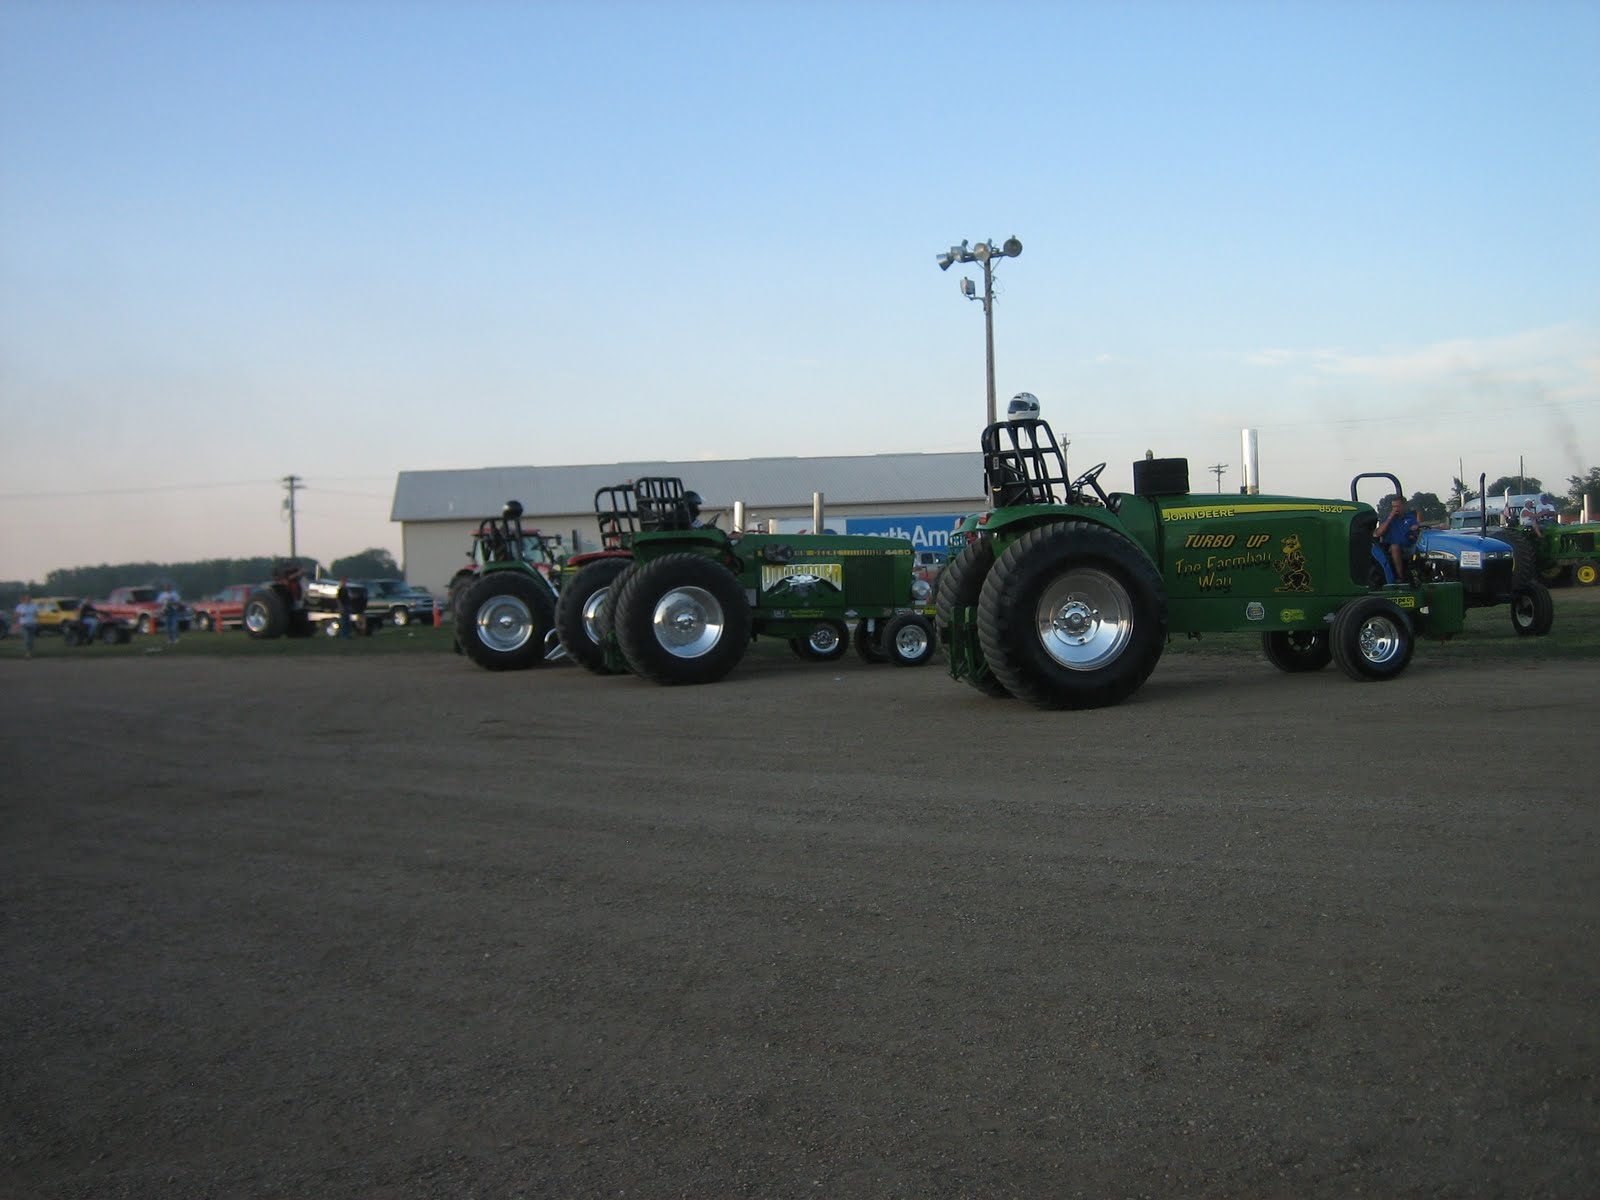 sunset drive outlaw tractor pull. Black Bedroom Furniture Sets. Home Design Ideas